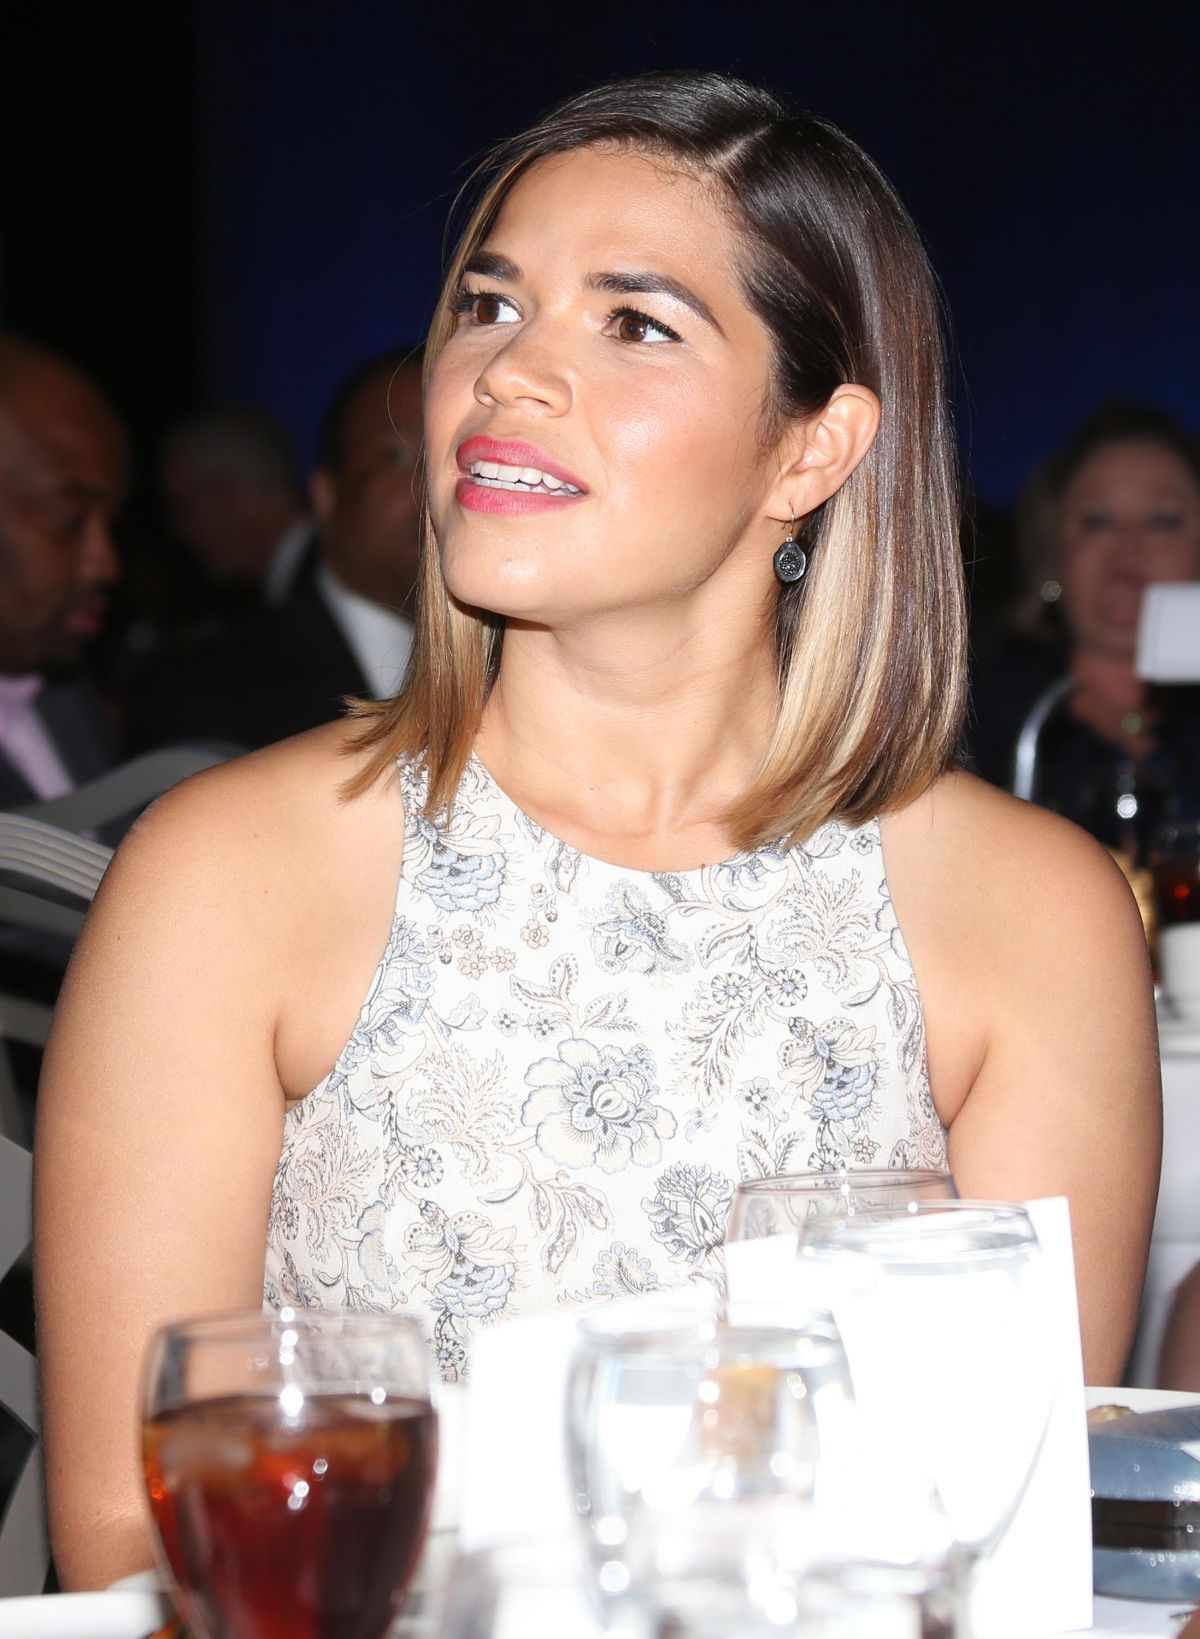 AMERICA FERRERA at 2017 National Association of Broadcasters Convention in Las Vegas 04/24/2017